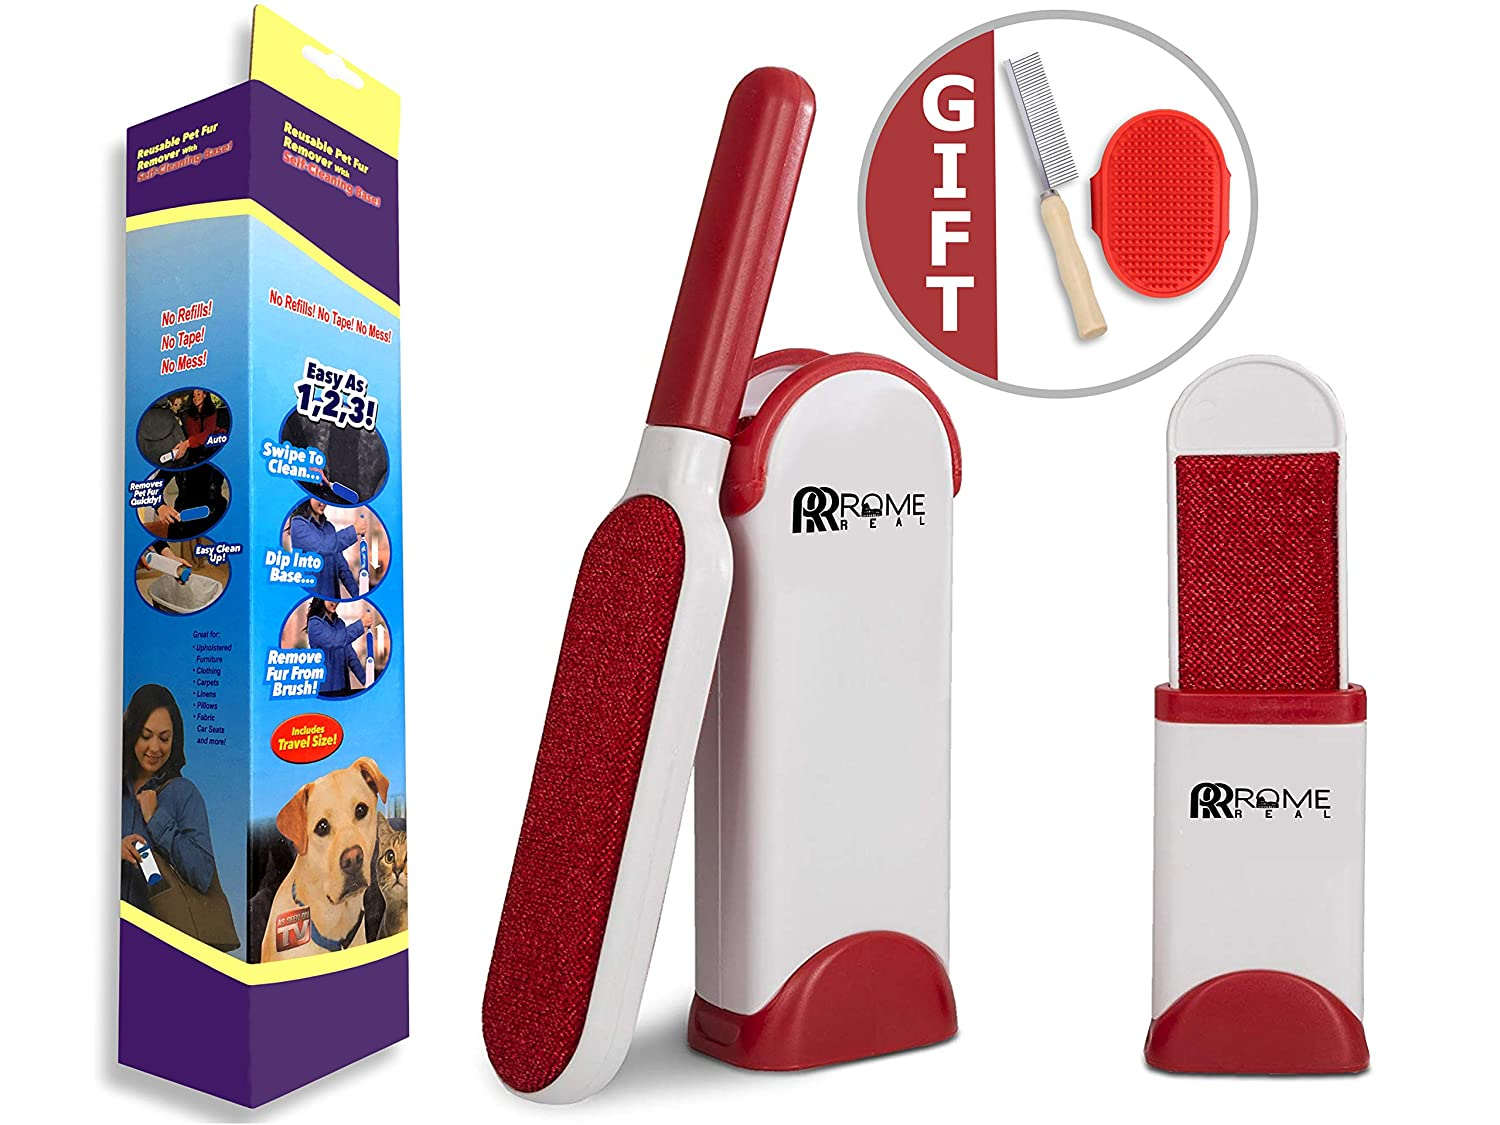 Best Pet Dog Hair Removal and Cat Fur Remover - Pet Fur and Lint Remover Magic Kit for Car Seat, Couch, Carpet, Clothing - with Pet Grooming Steel Dog Brush and Bathing Brush Rome Real